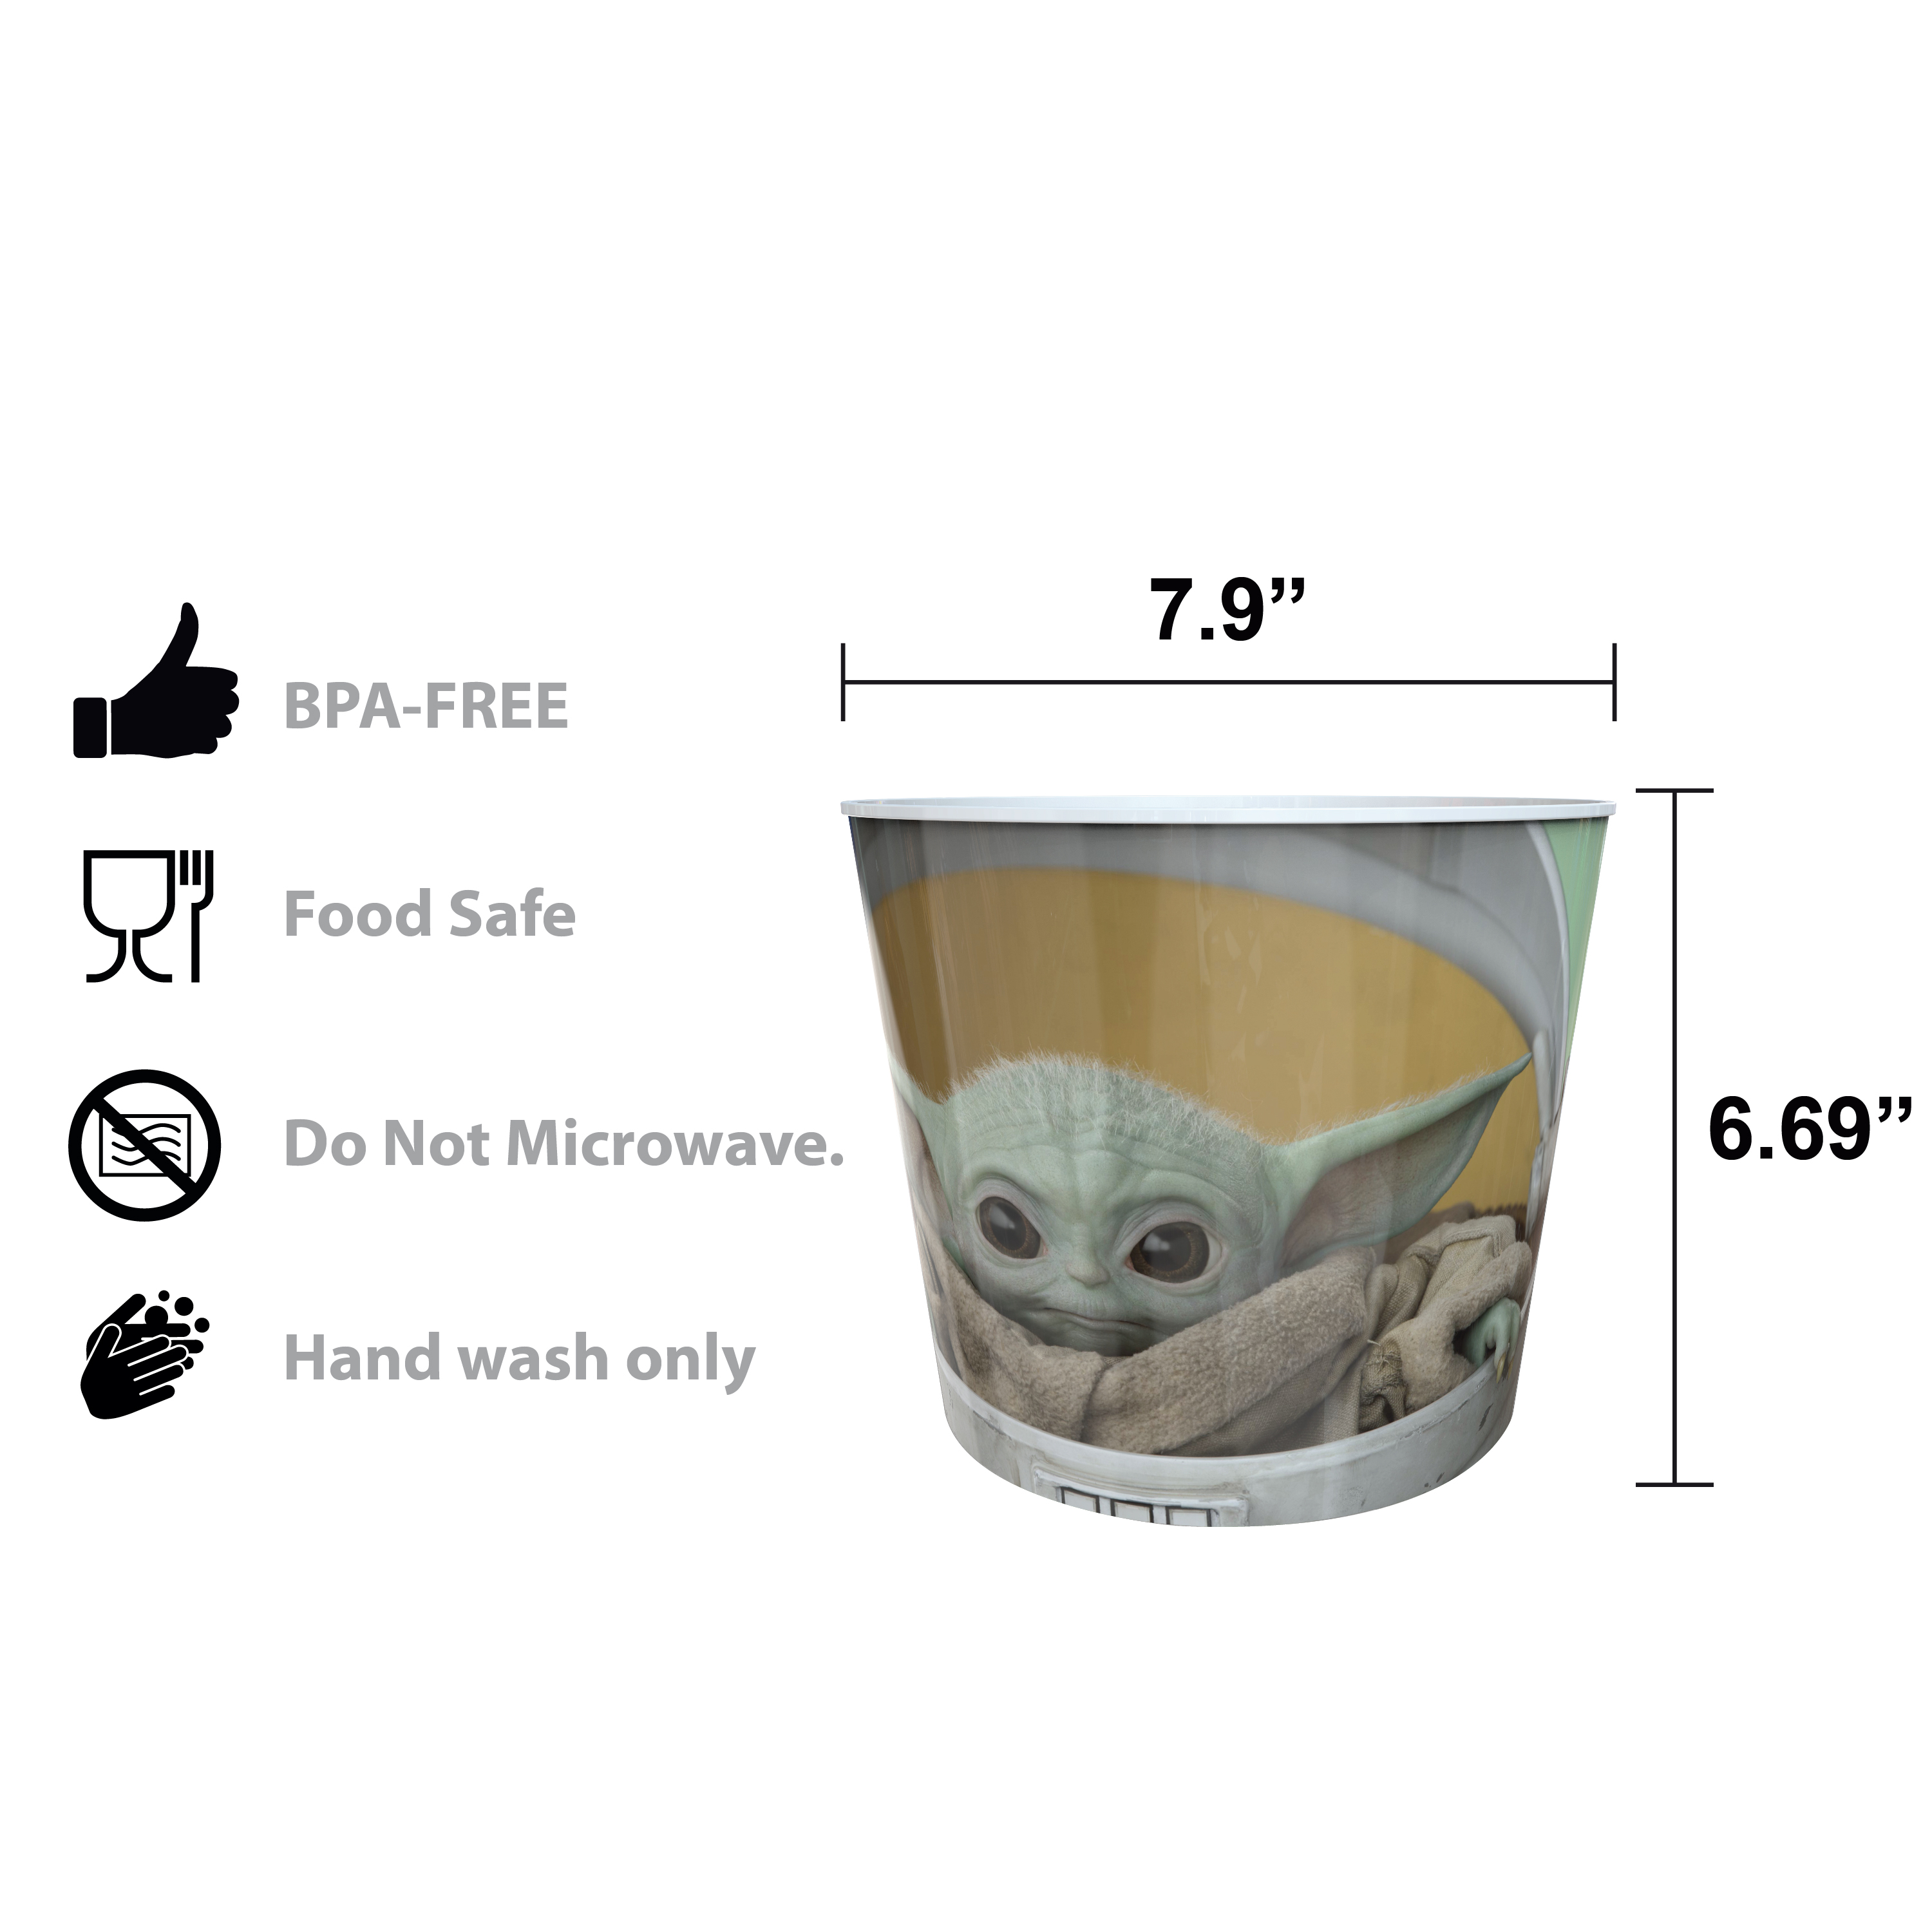 Star Wars: The Mandalorian Plastic Popcorn Container and Bowls, The Child (Baby Yoda), 5-piece set slideshow image 9